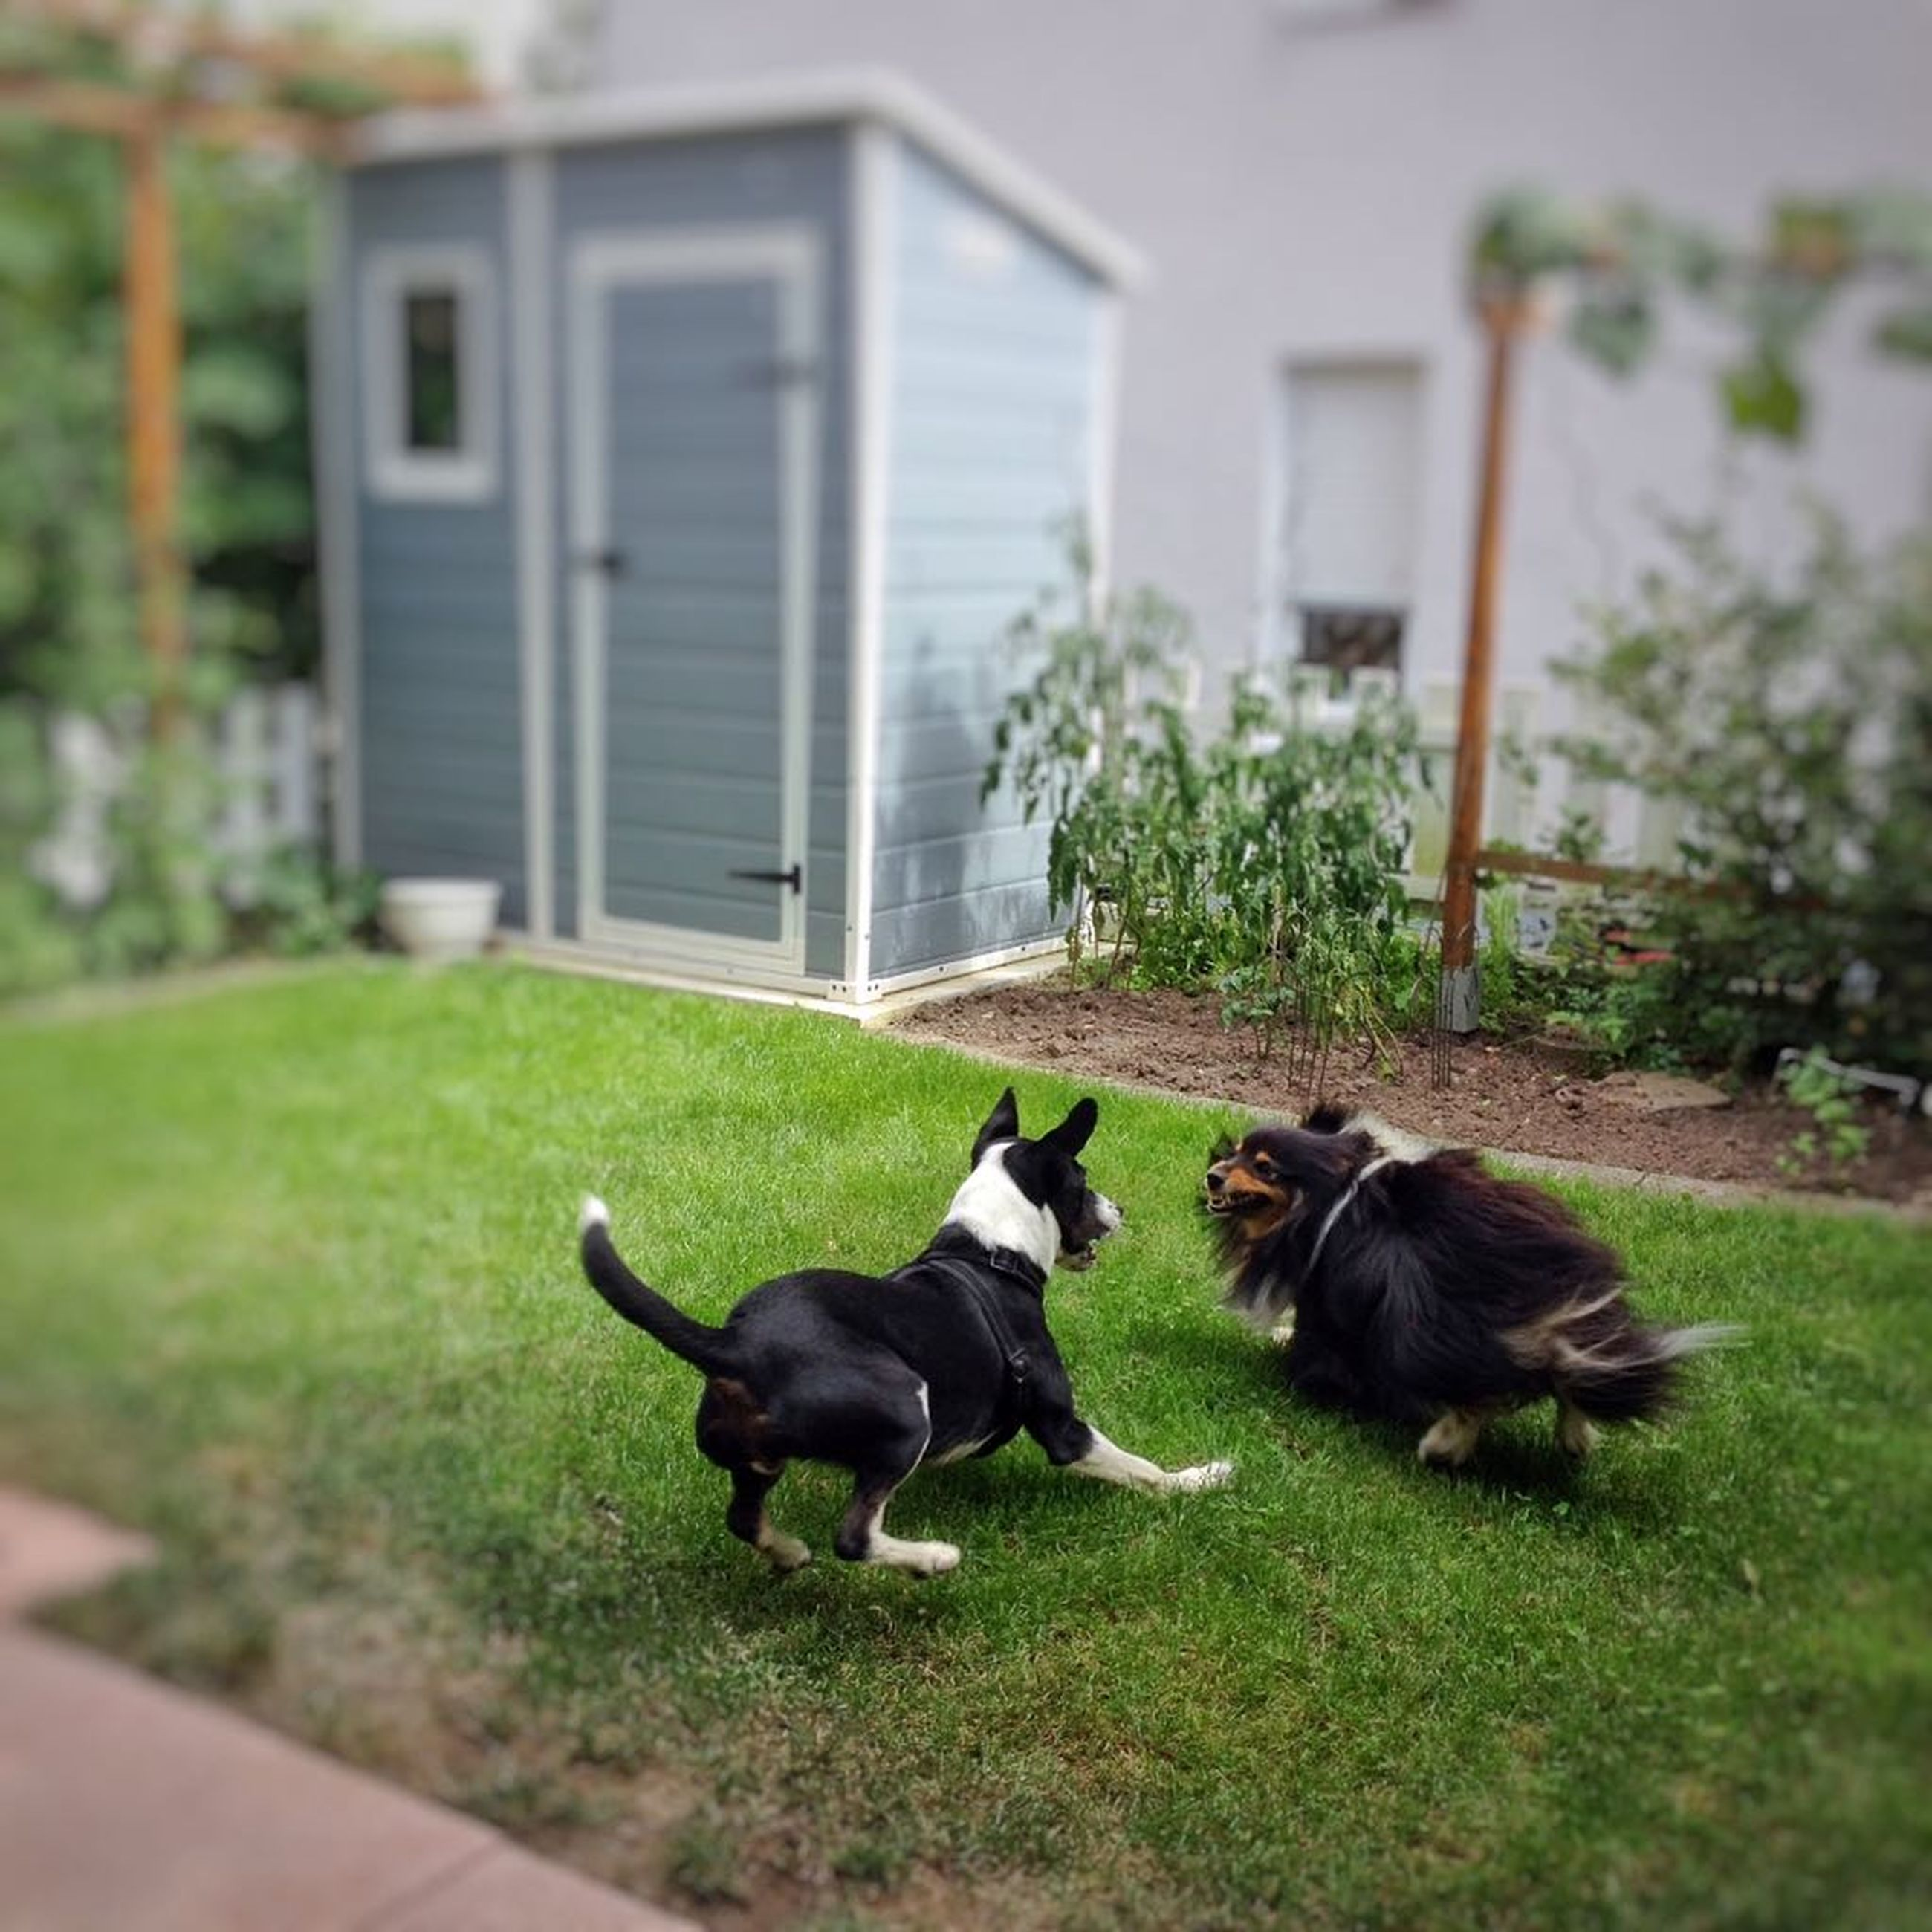 pets, dog, domestic animals, animal themes, grass, one animal, mammal, outdoors, building exterior, front or back yard, day, built structure, plant, no people, architecture, friendship, full length, nature